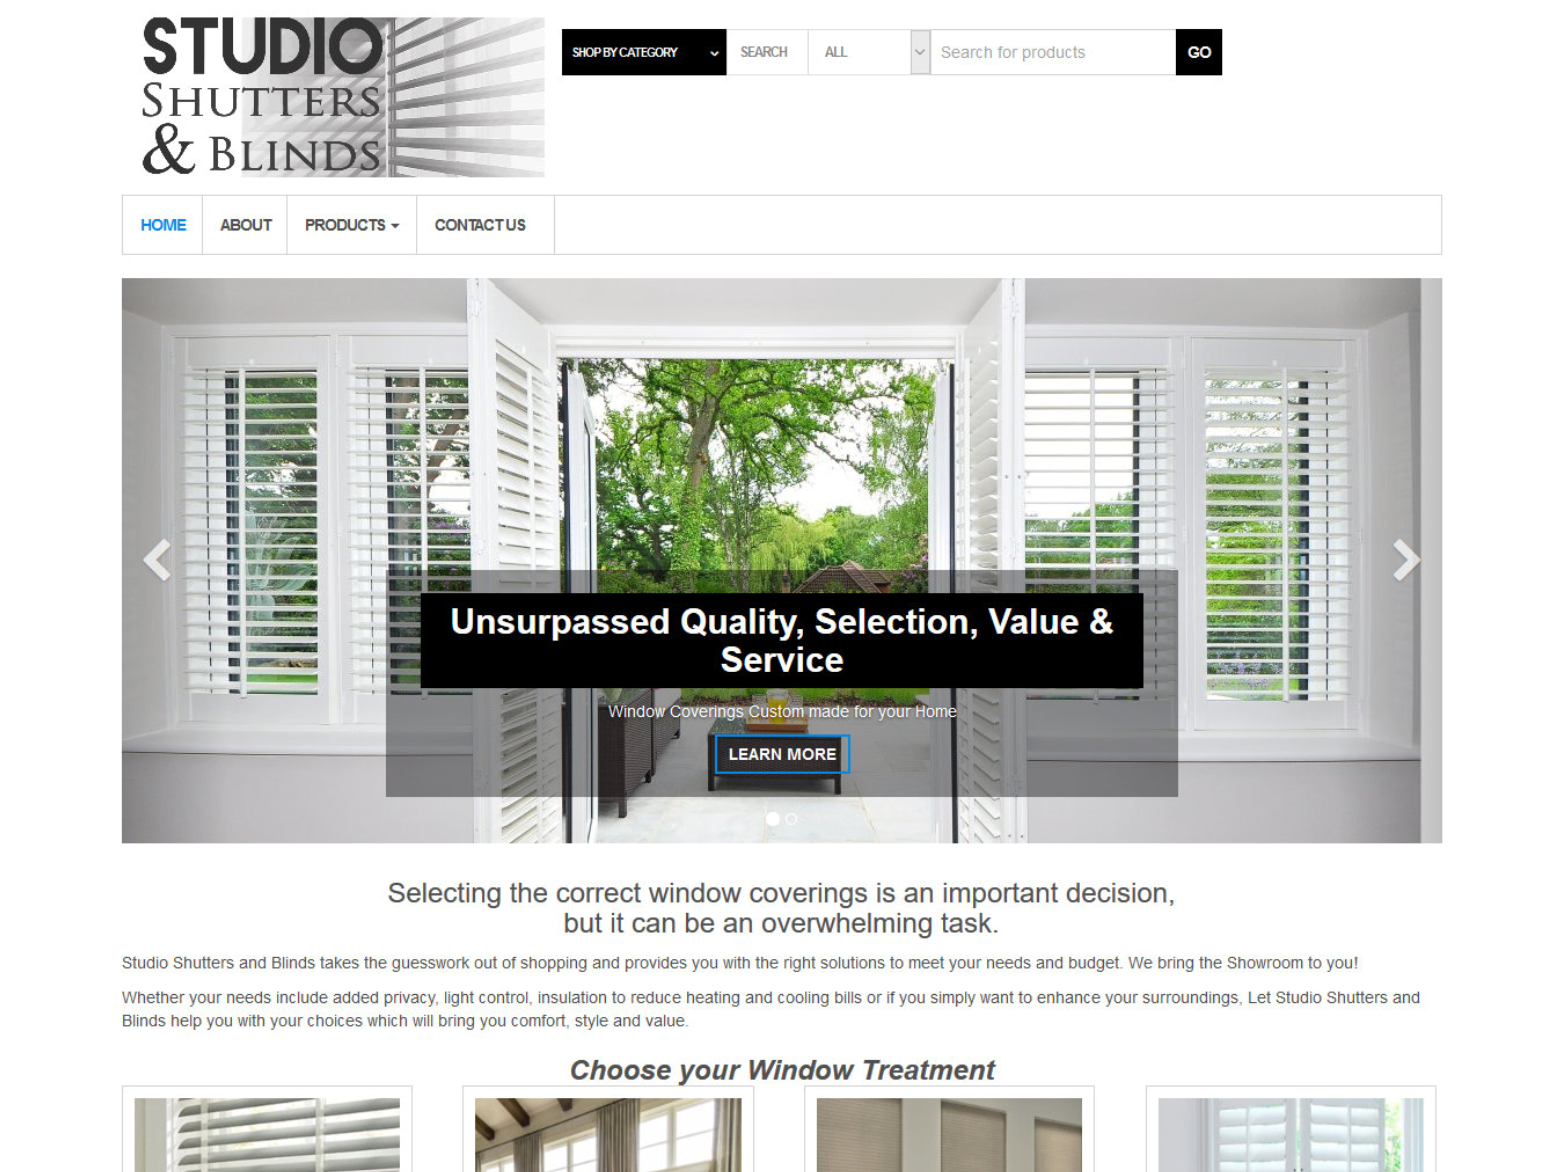 Studio Shutters and Blinds